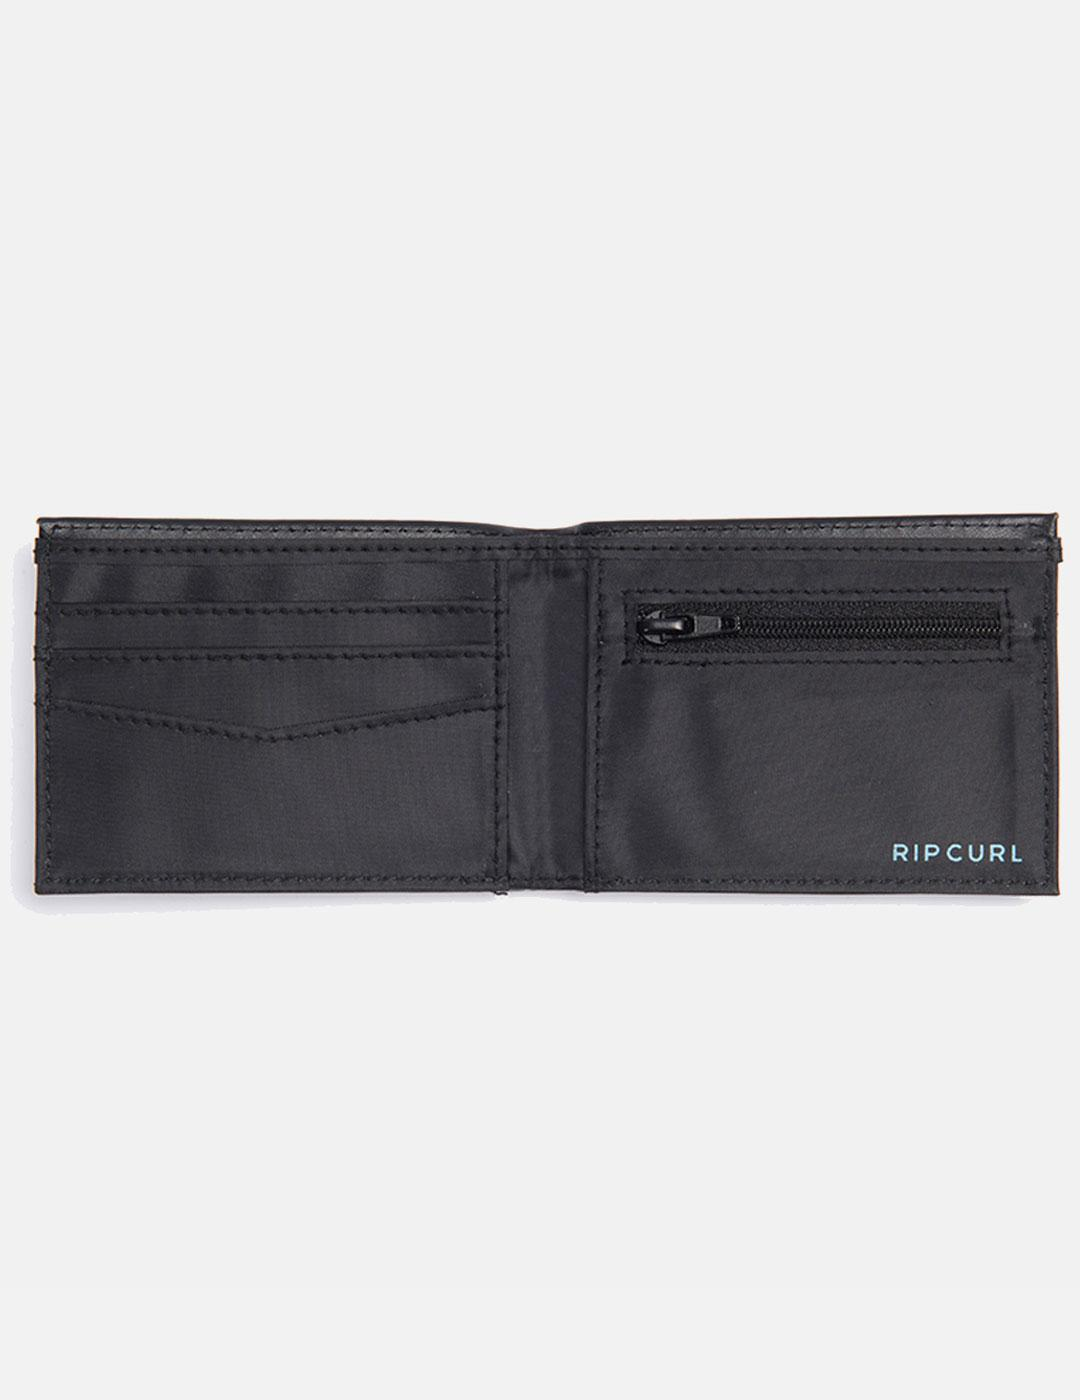 CARTERA RIP CURL FLOW PU SLIM WALLET